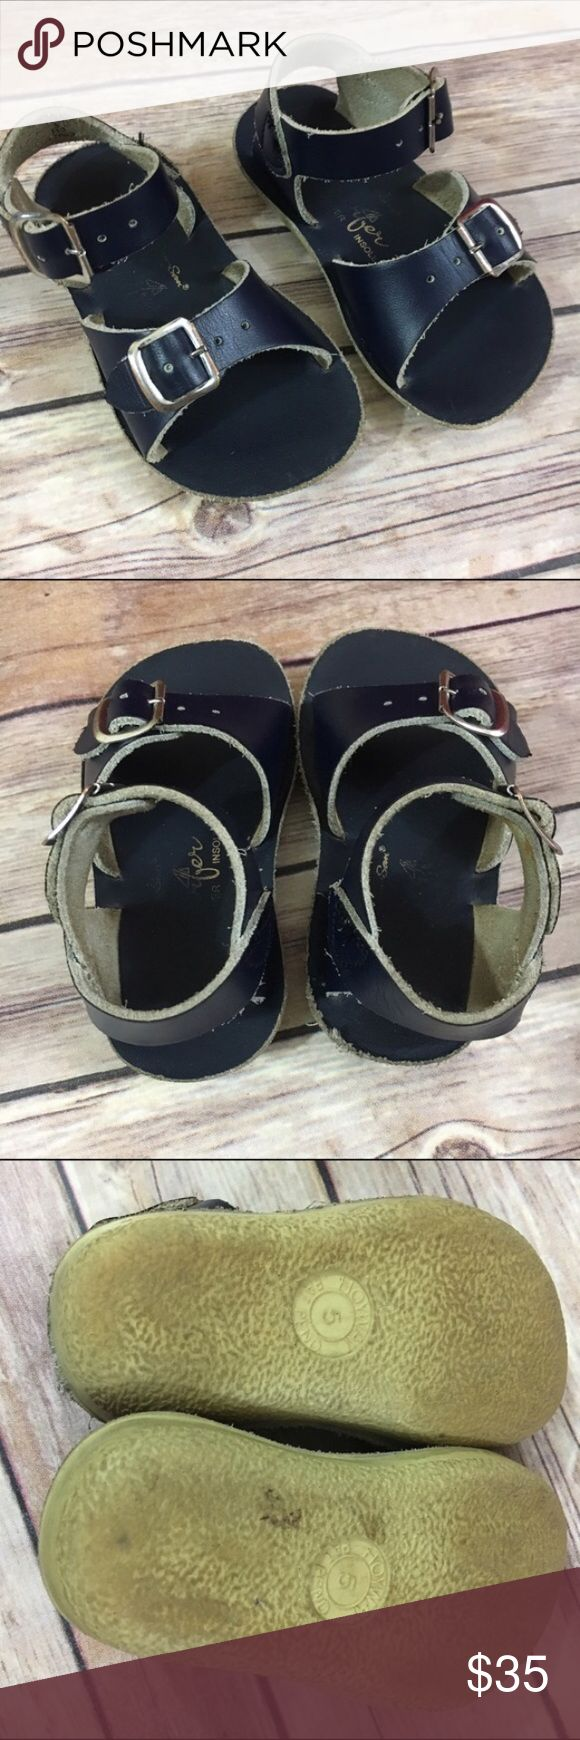 Sun-San Saltwater Surfer Sandals Navy Hoy 5 Sun-San Saltwater Surfer Sandals Navy Hoy 5  Very good used condition with a little more wear at the back of the right sandal as shown in picture.  These shoes last forever.  A true classic.  #sunsan #saltwater #salts #surfer #navy #sandals #boyssandals #coolkicks #summerkicks #blue #hoy Salt Water Sandals by Hoy Shoes Sandals & Flip Flops